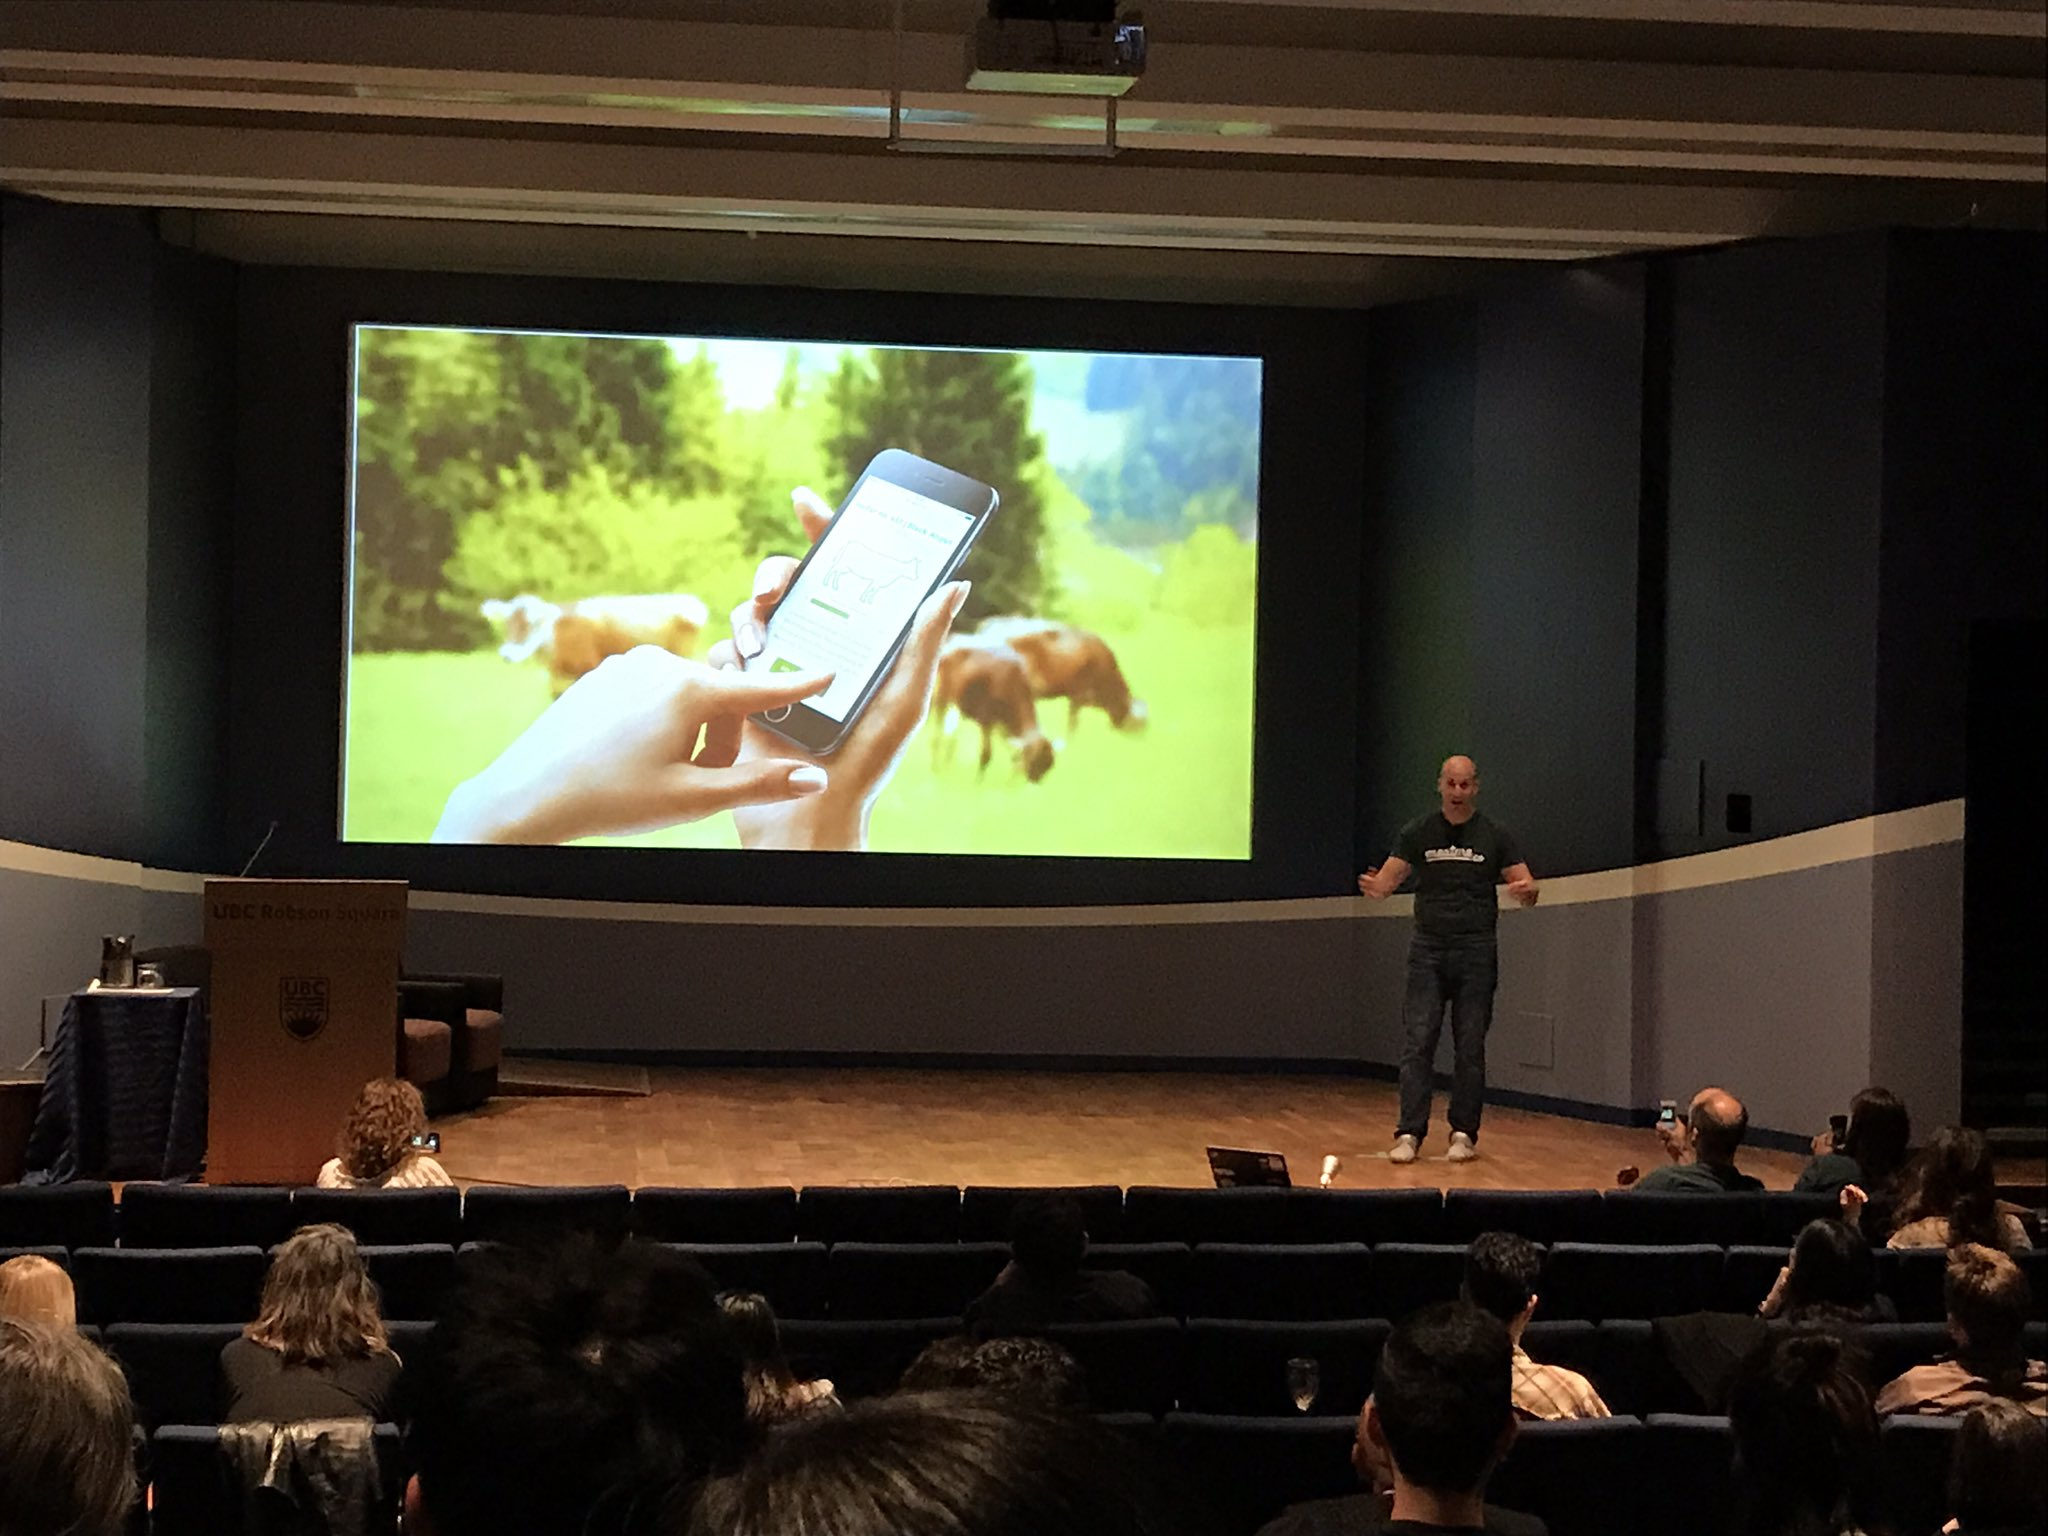 .@meatmedotco is the Tinder for farm-to-table meat consumption  #Propel2017 https://t.co/OqkFbWGEu2